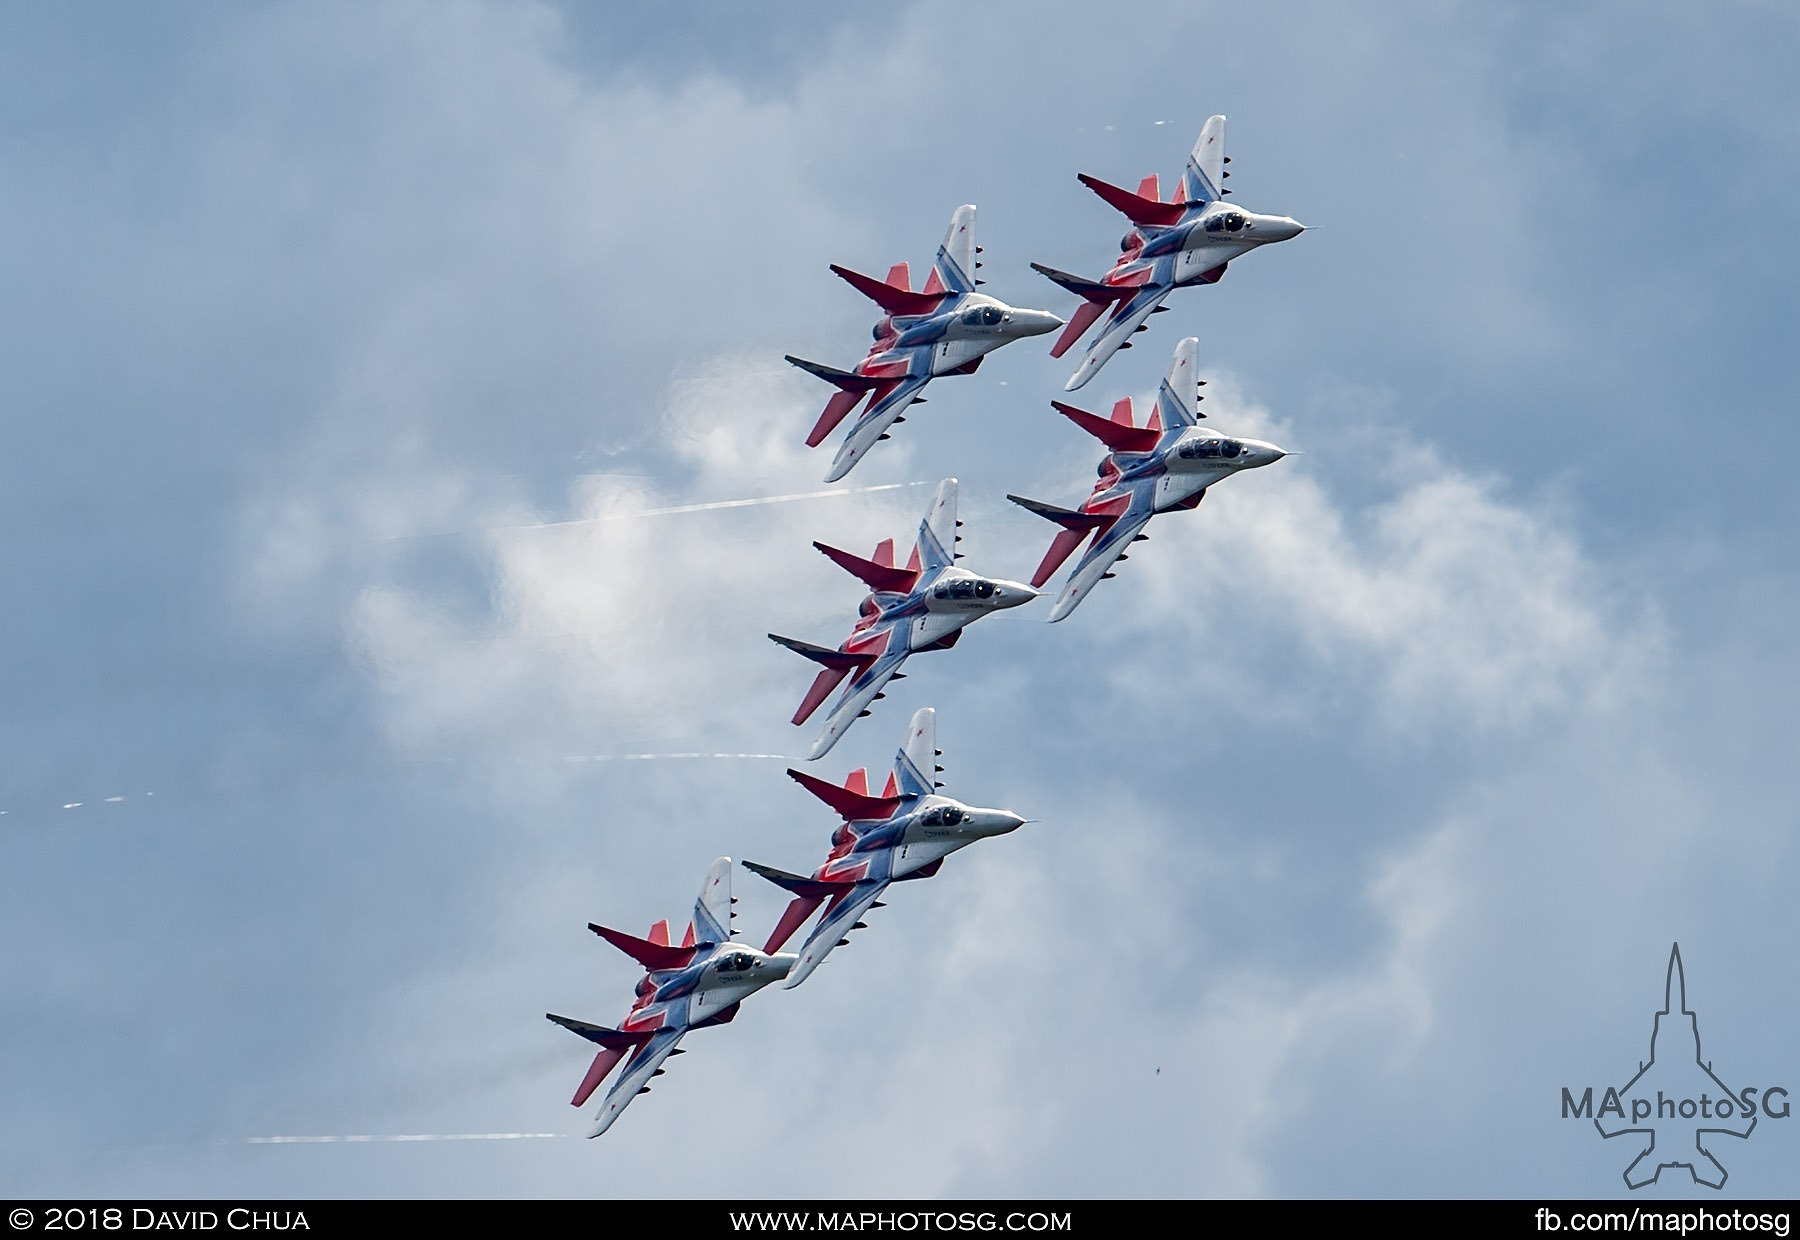 35. Six ship formation of the Swifts as they overfly the Kubinka Airfield